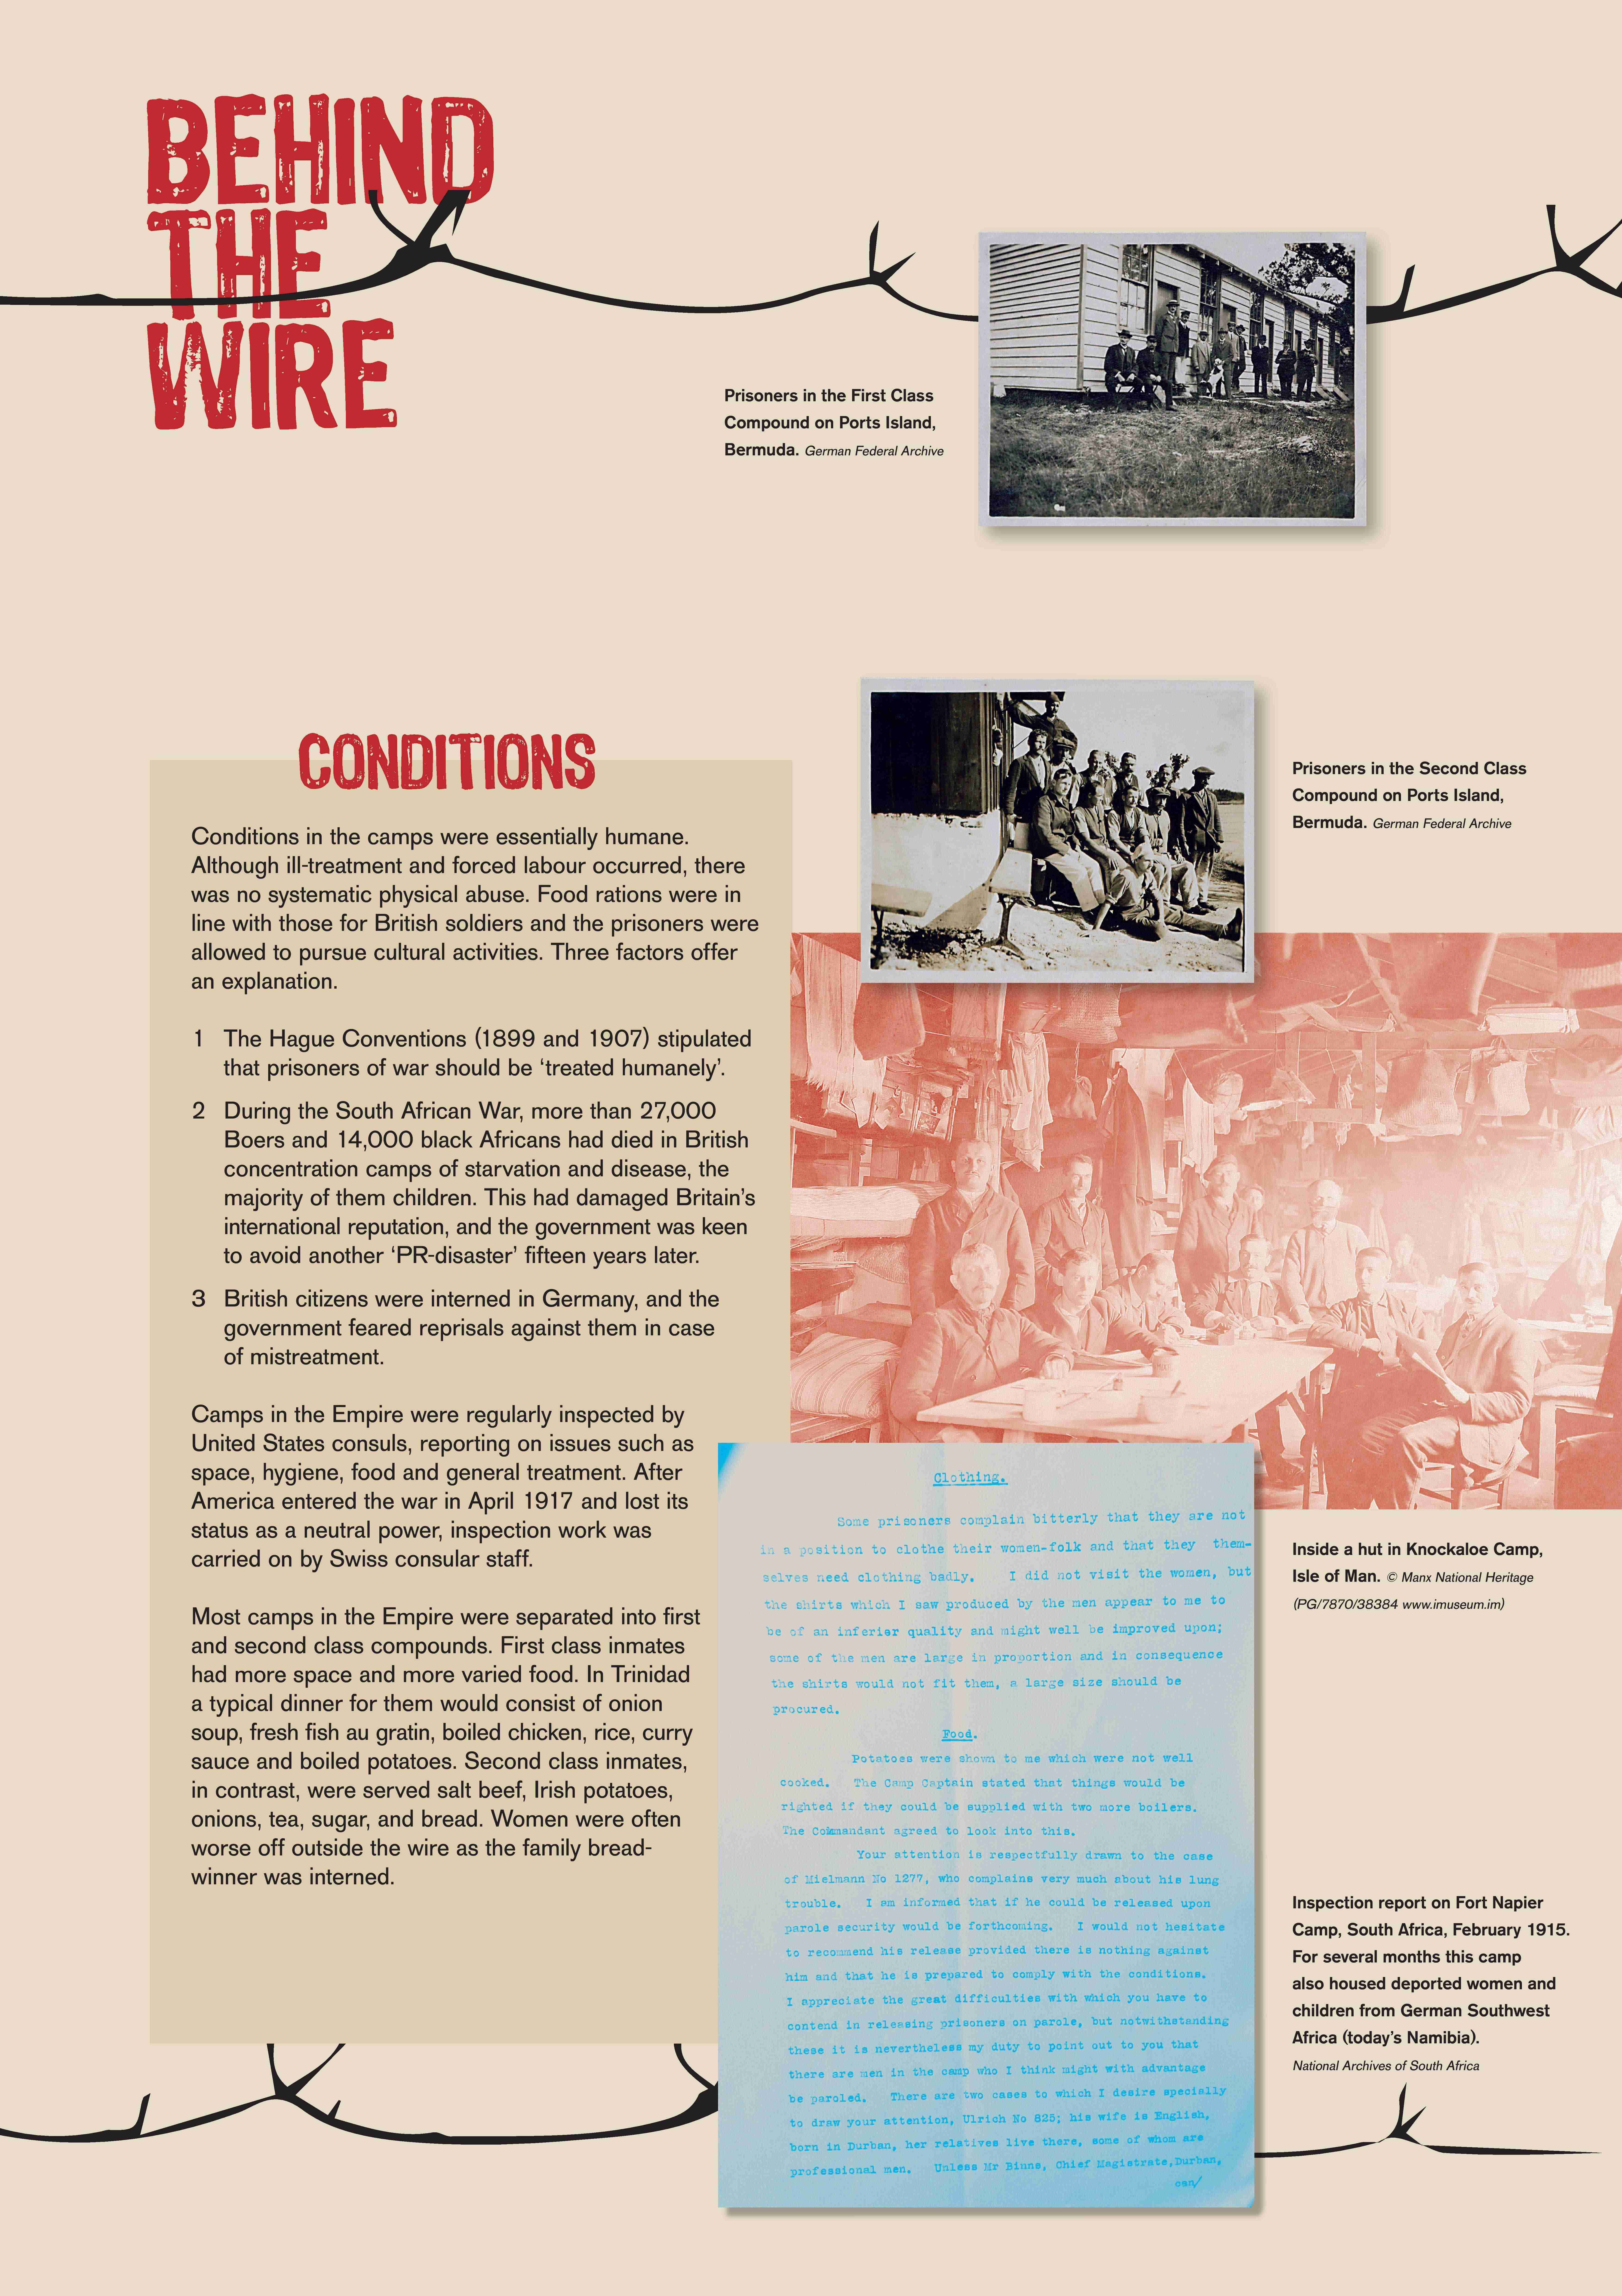 08-Behind the Wire-A1-Exhibition-Conditions_DIGITAL VERSION-page-001-min-compressed